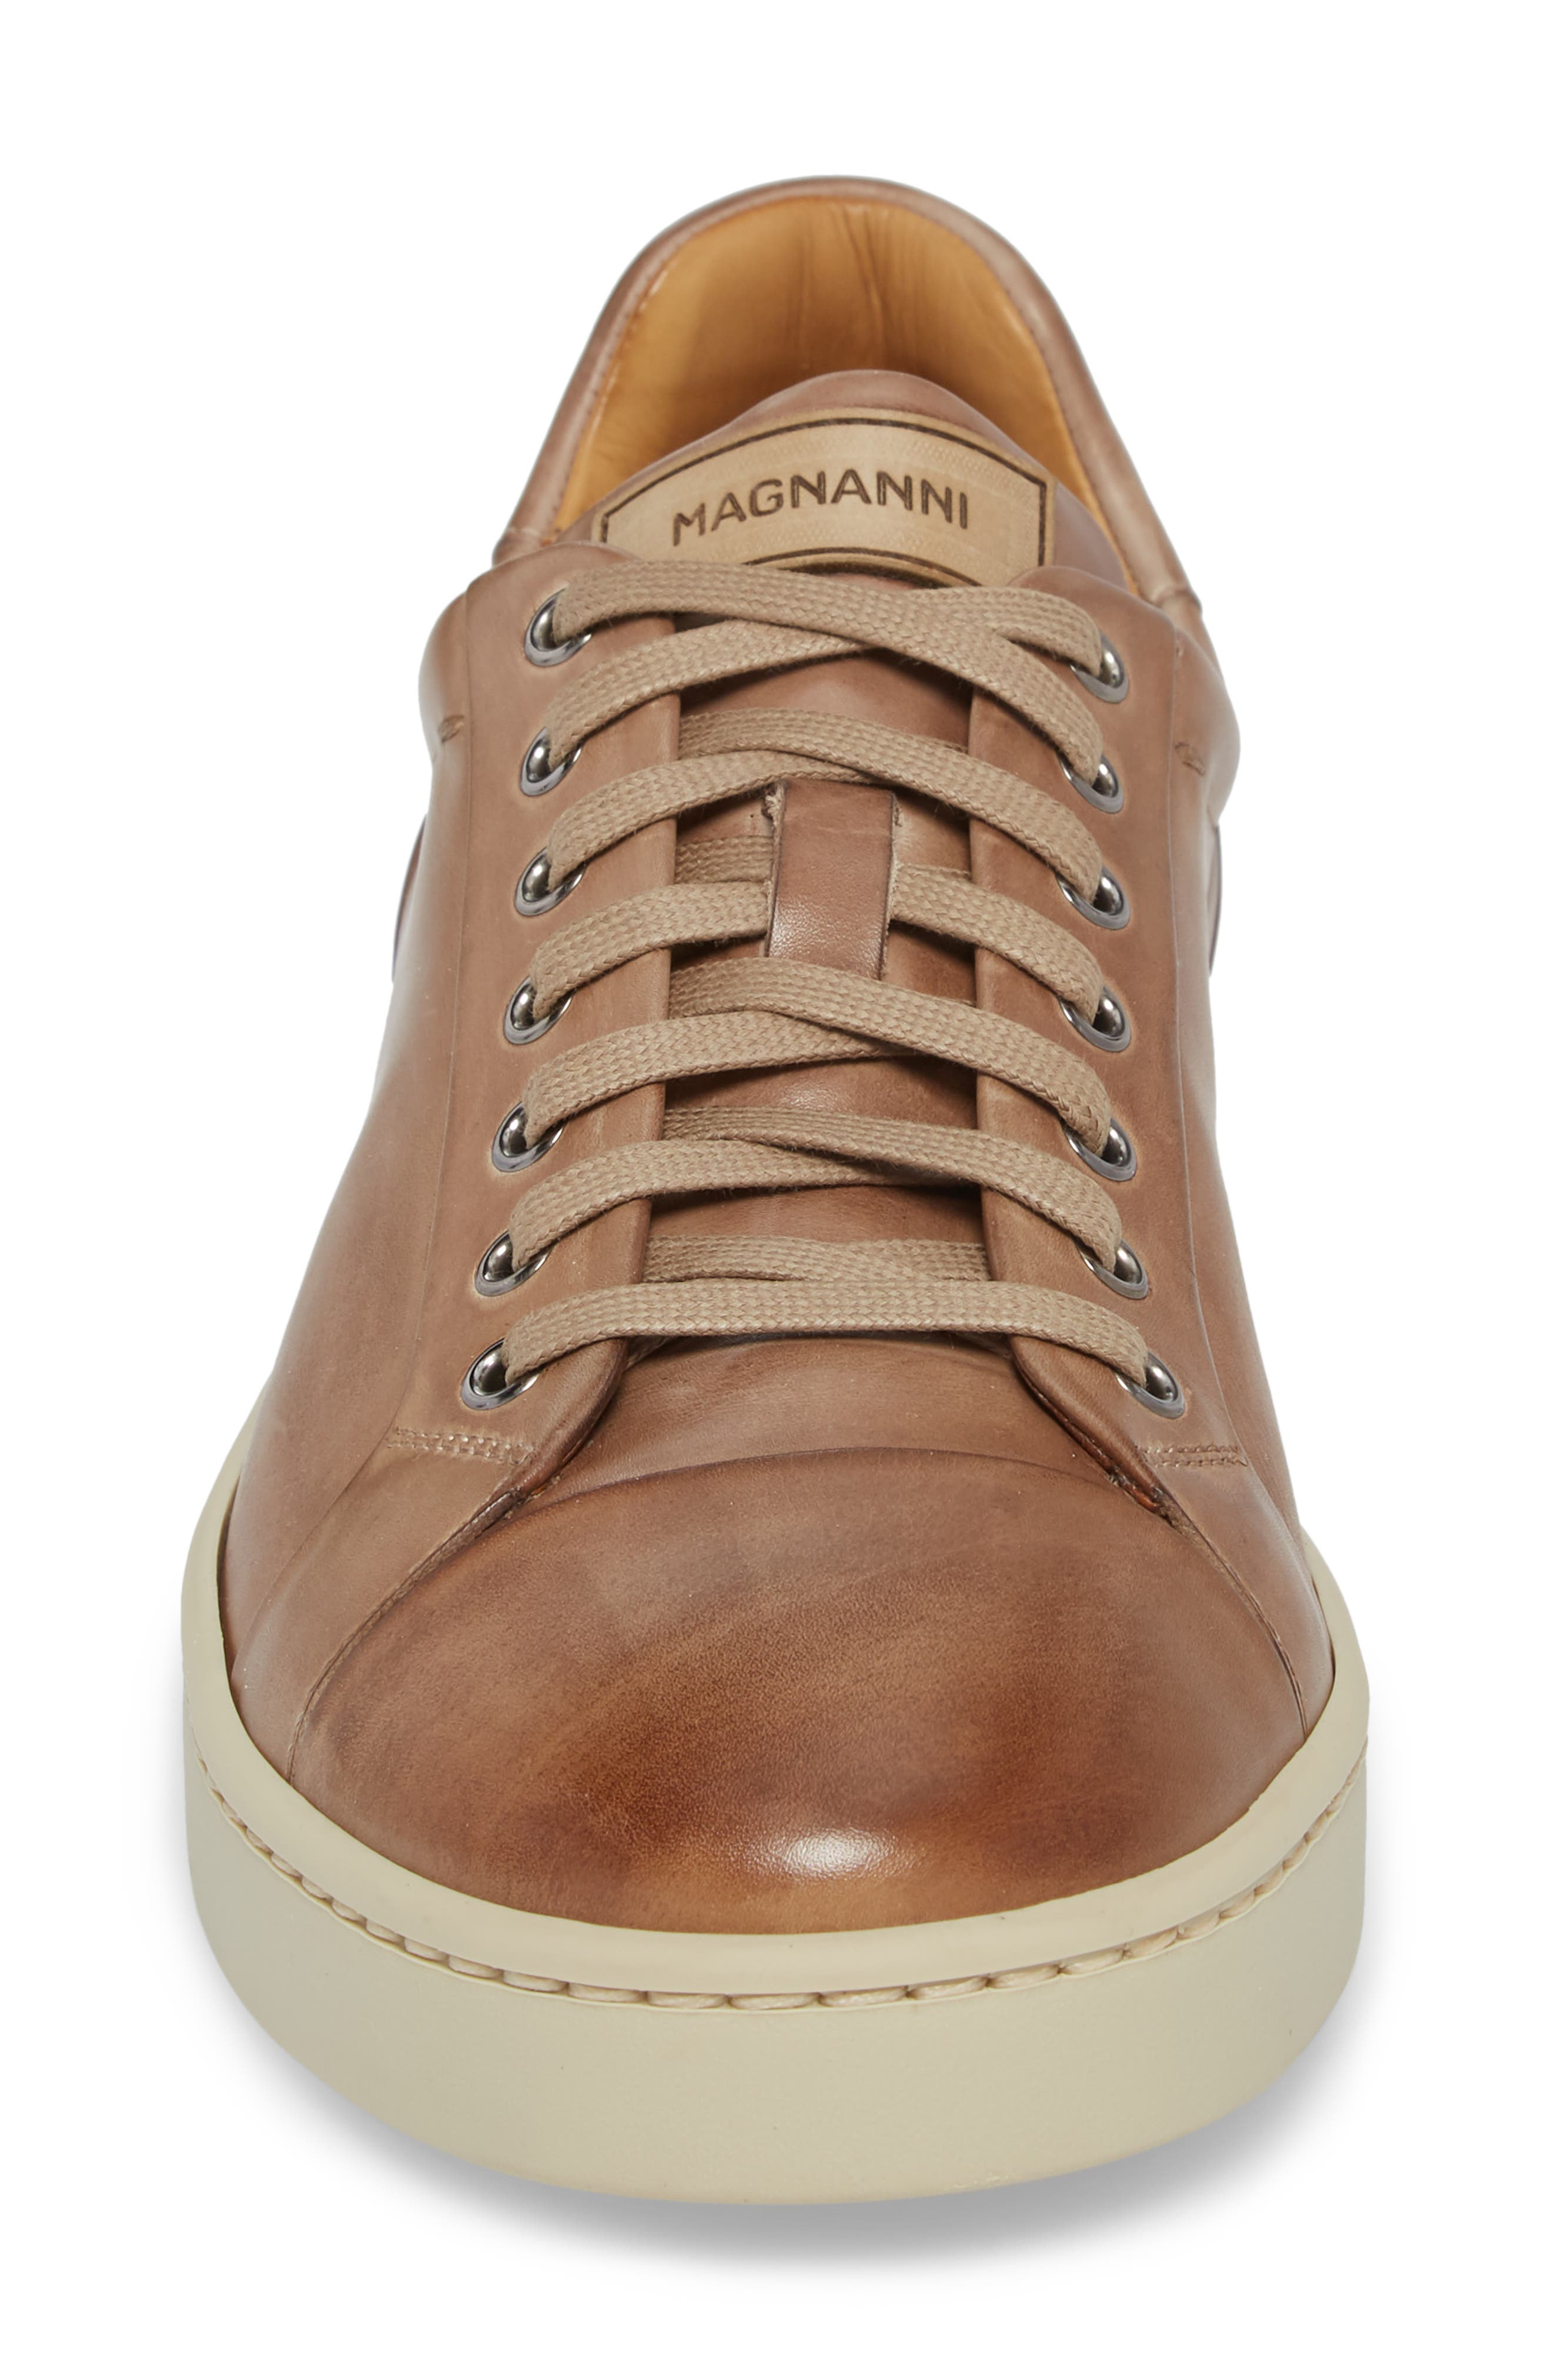 Erardo Low Top Sneaker,                             Alternate thumbnail 4, color,                             Taupe/ Taupe Leather